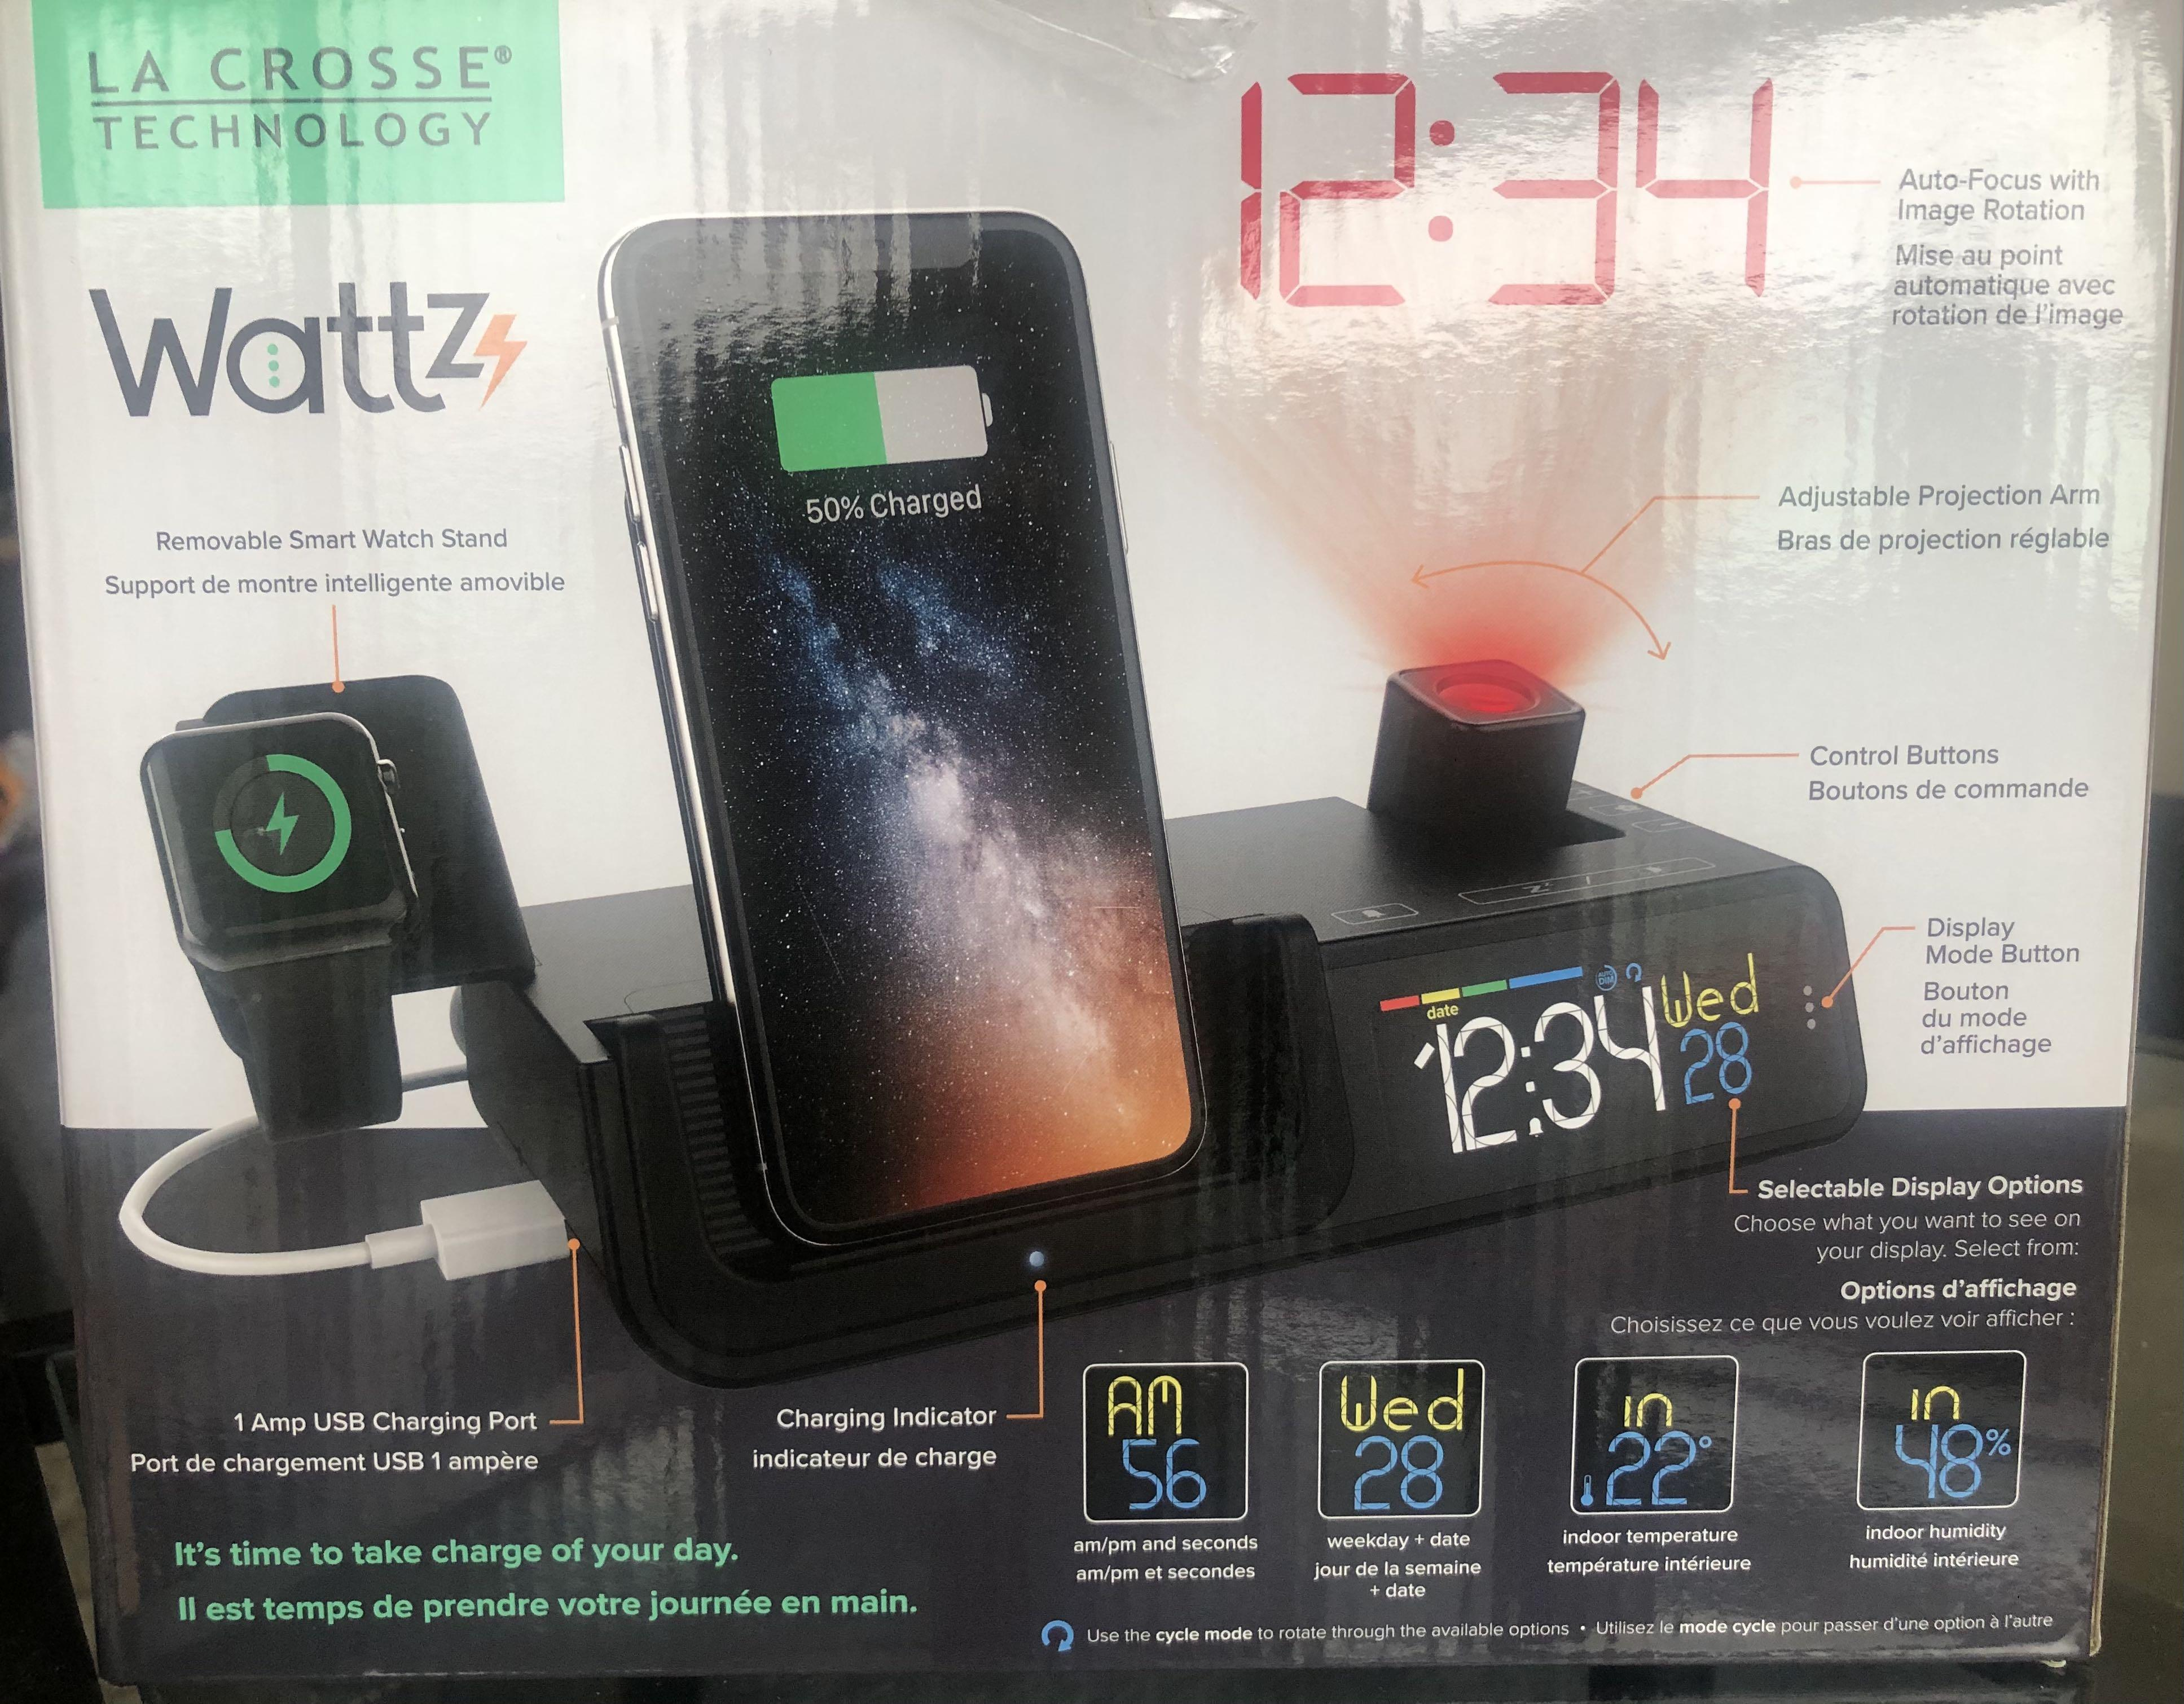 All in one Alarm clock, wireless phone charger and Smart Watch charger